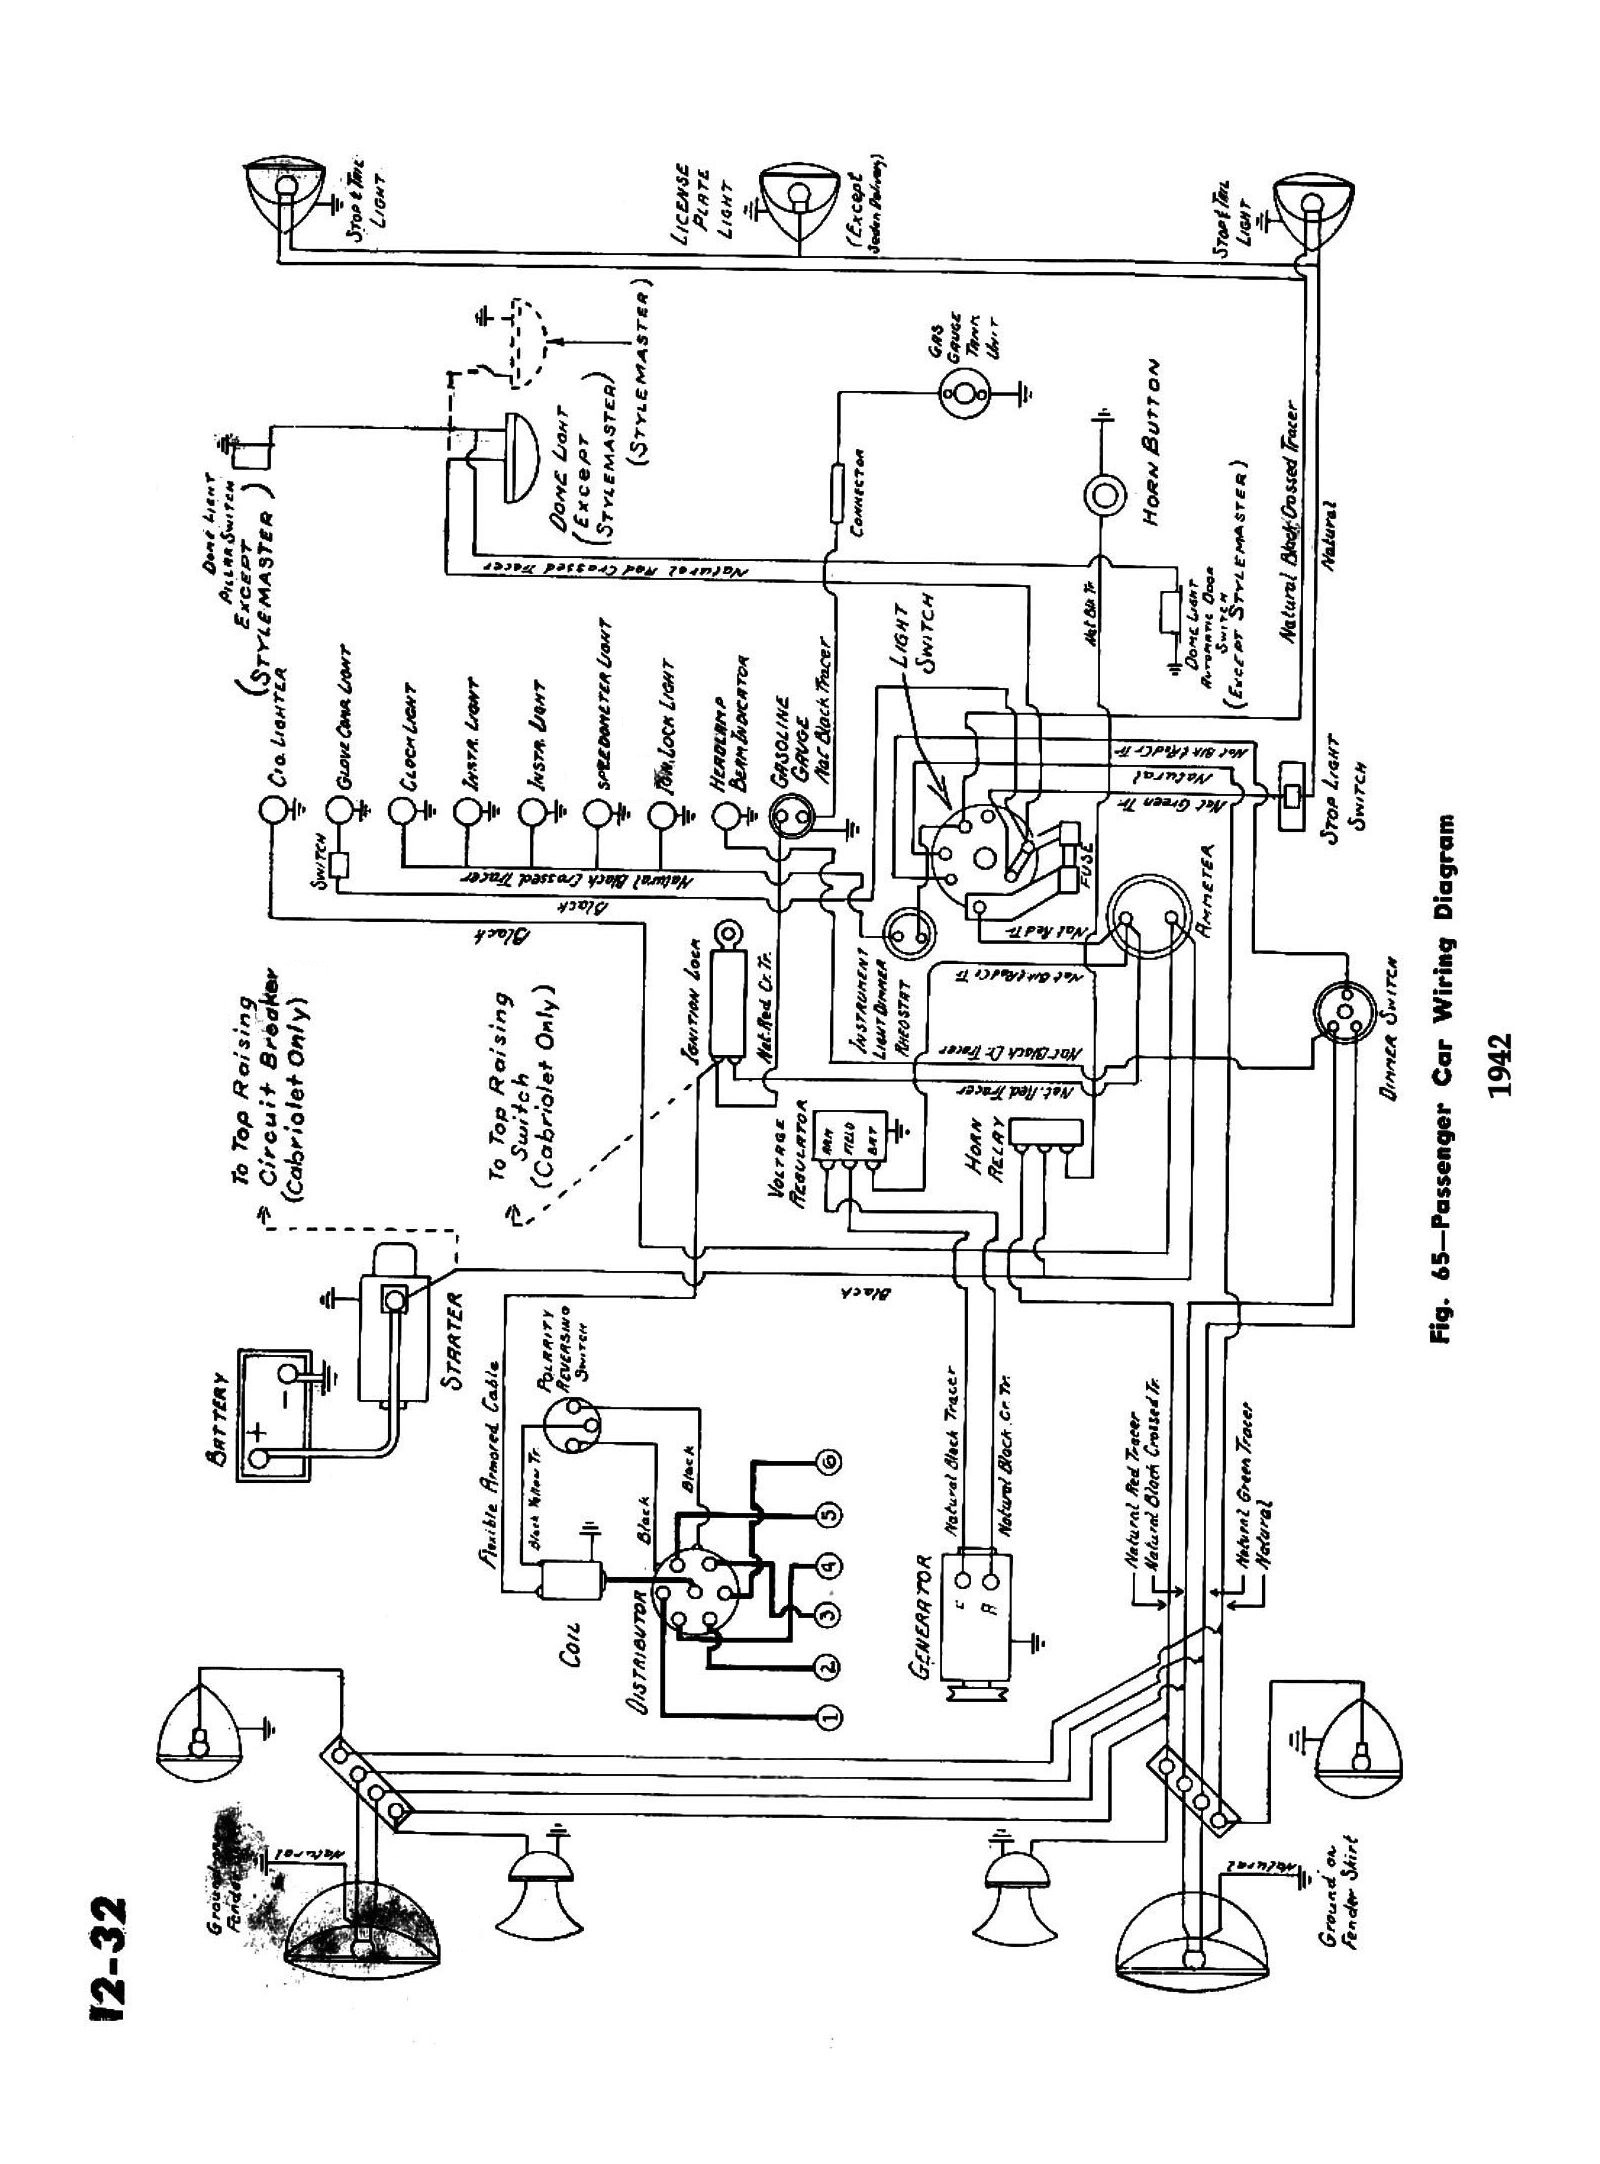 Chevy Starter Switch Wiring Diagram 2003 Library Jeep Wrangler Tj Connectors Pinouts 2000 1942 Passenger Car